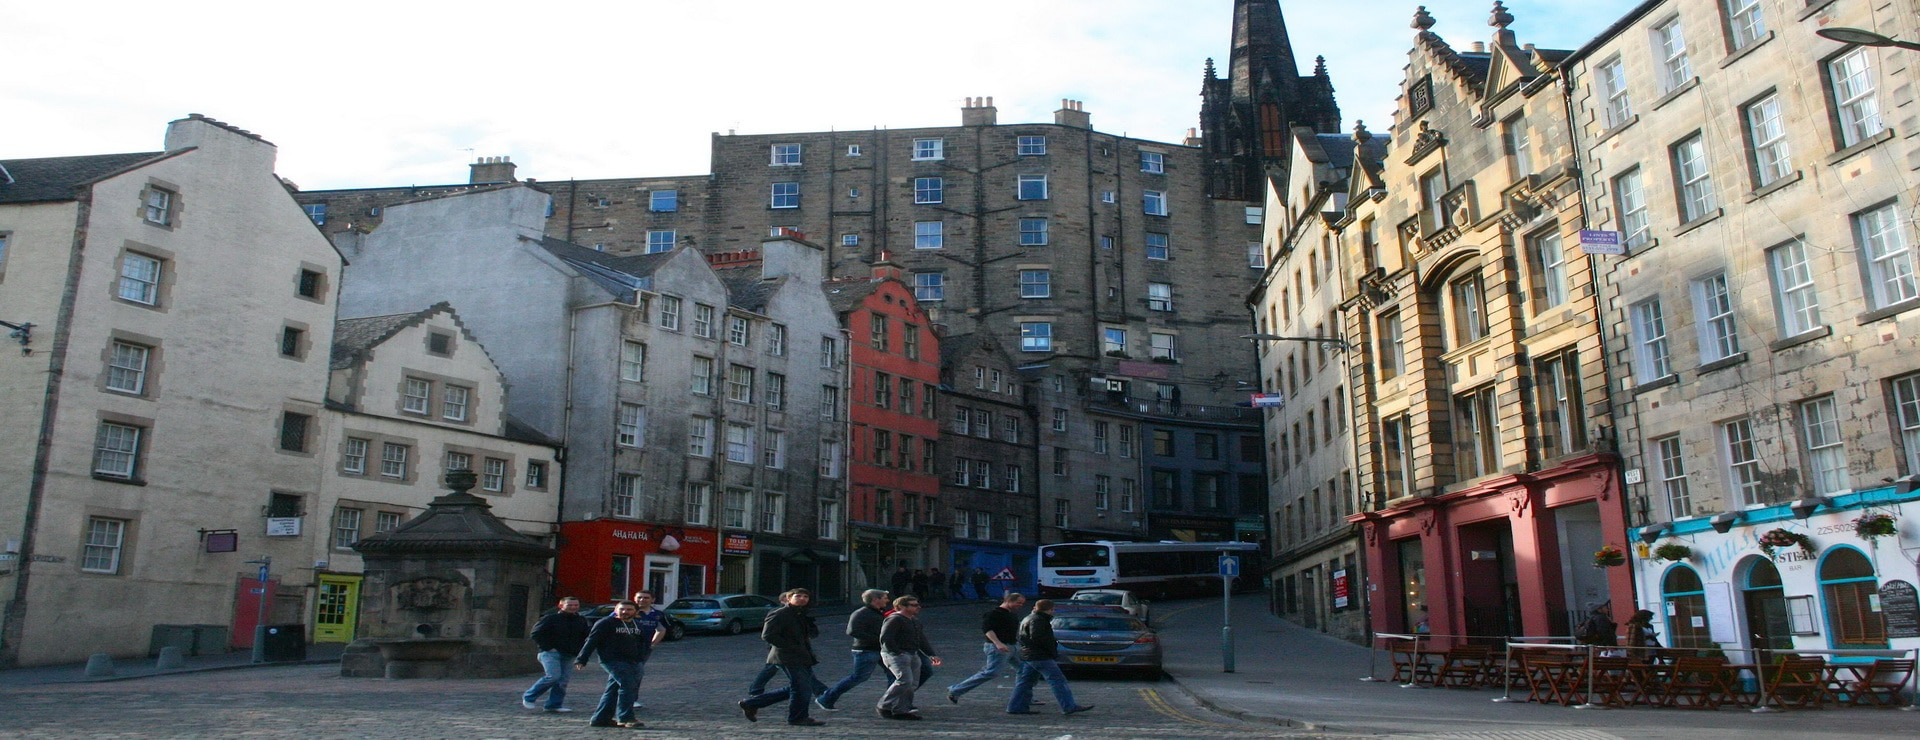 FREE Sex Dating in Paisley Scotland